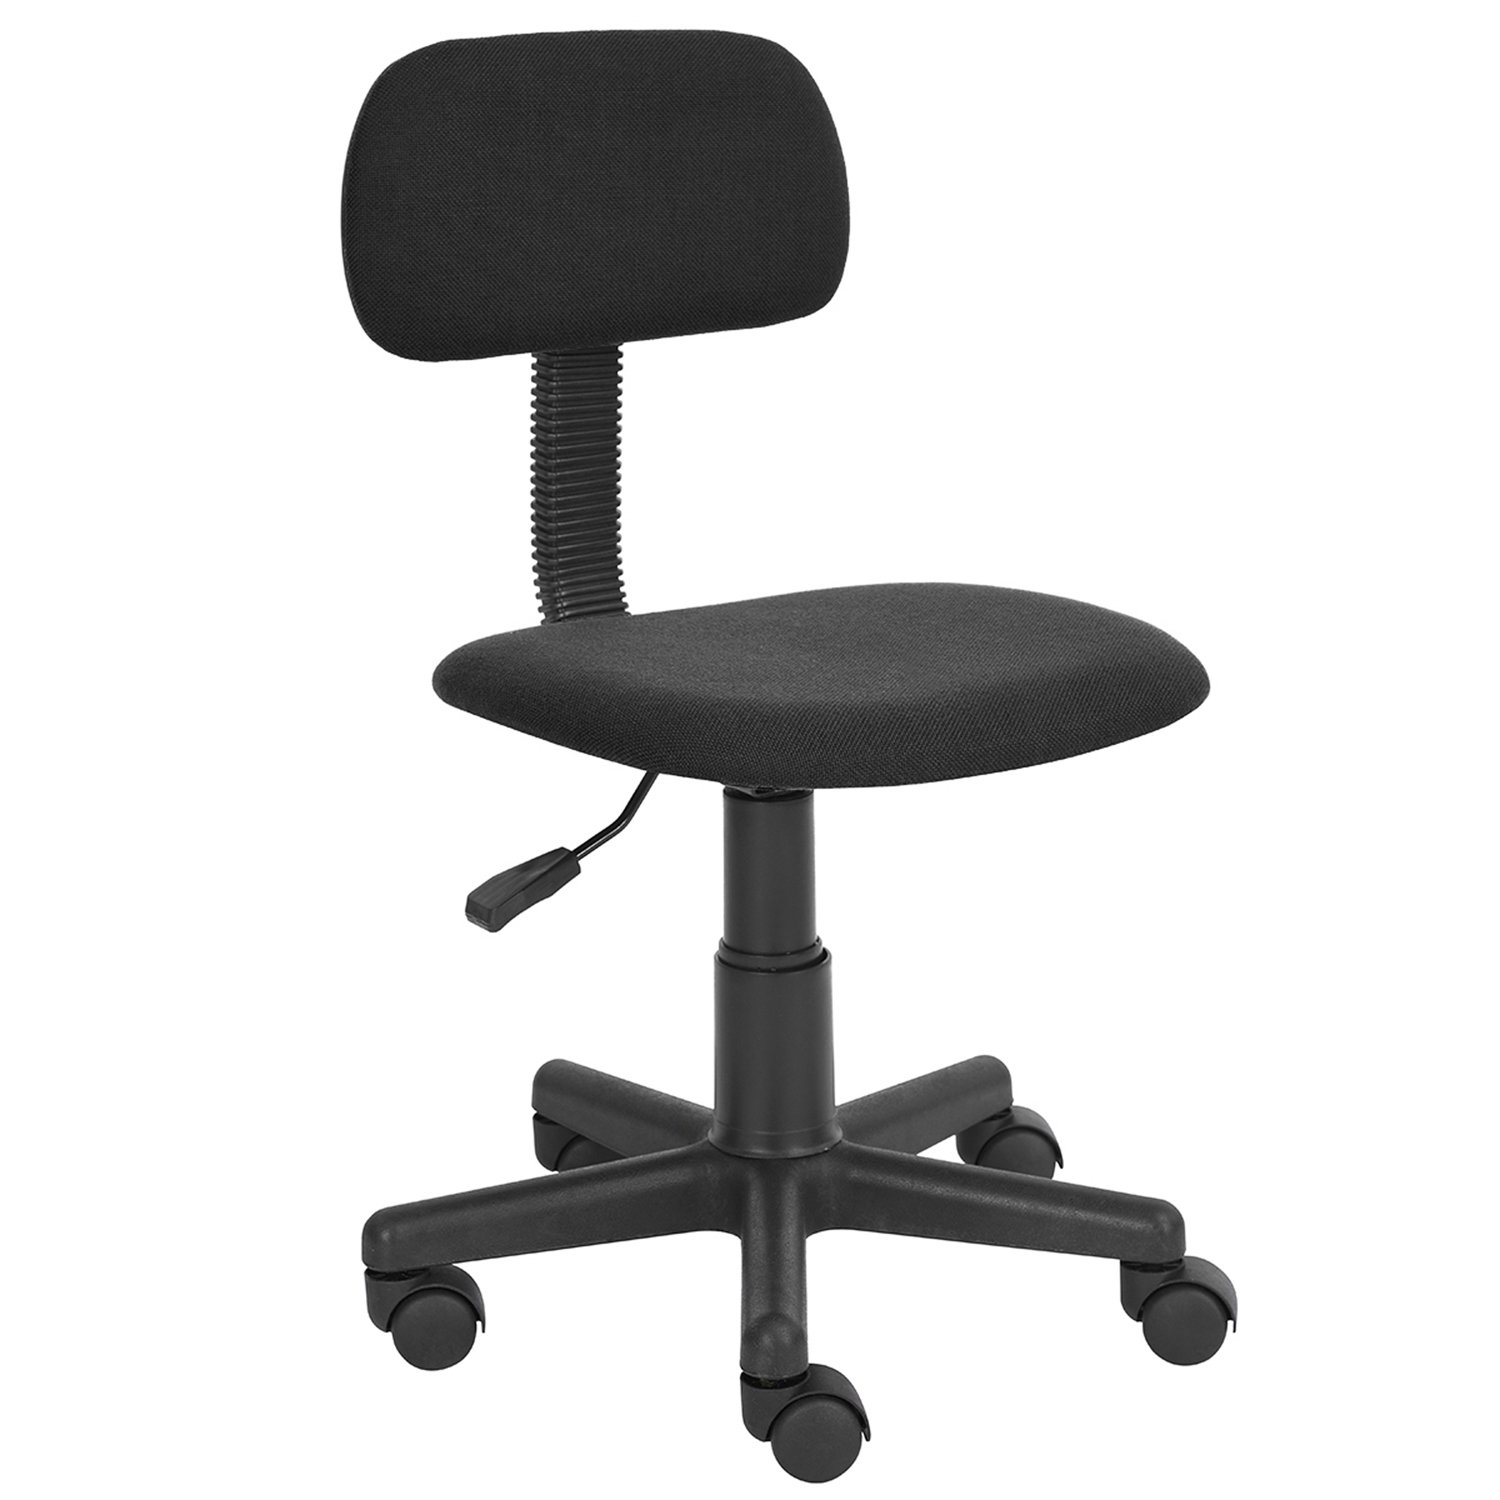 HOMY CASA Homycasa Yanyan Mesh Mid-back Executive Adjustable Computer Task Desk Office Chairs (Black)